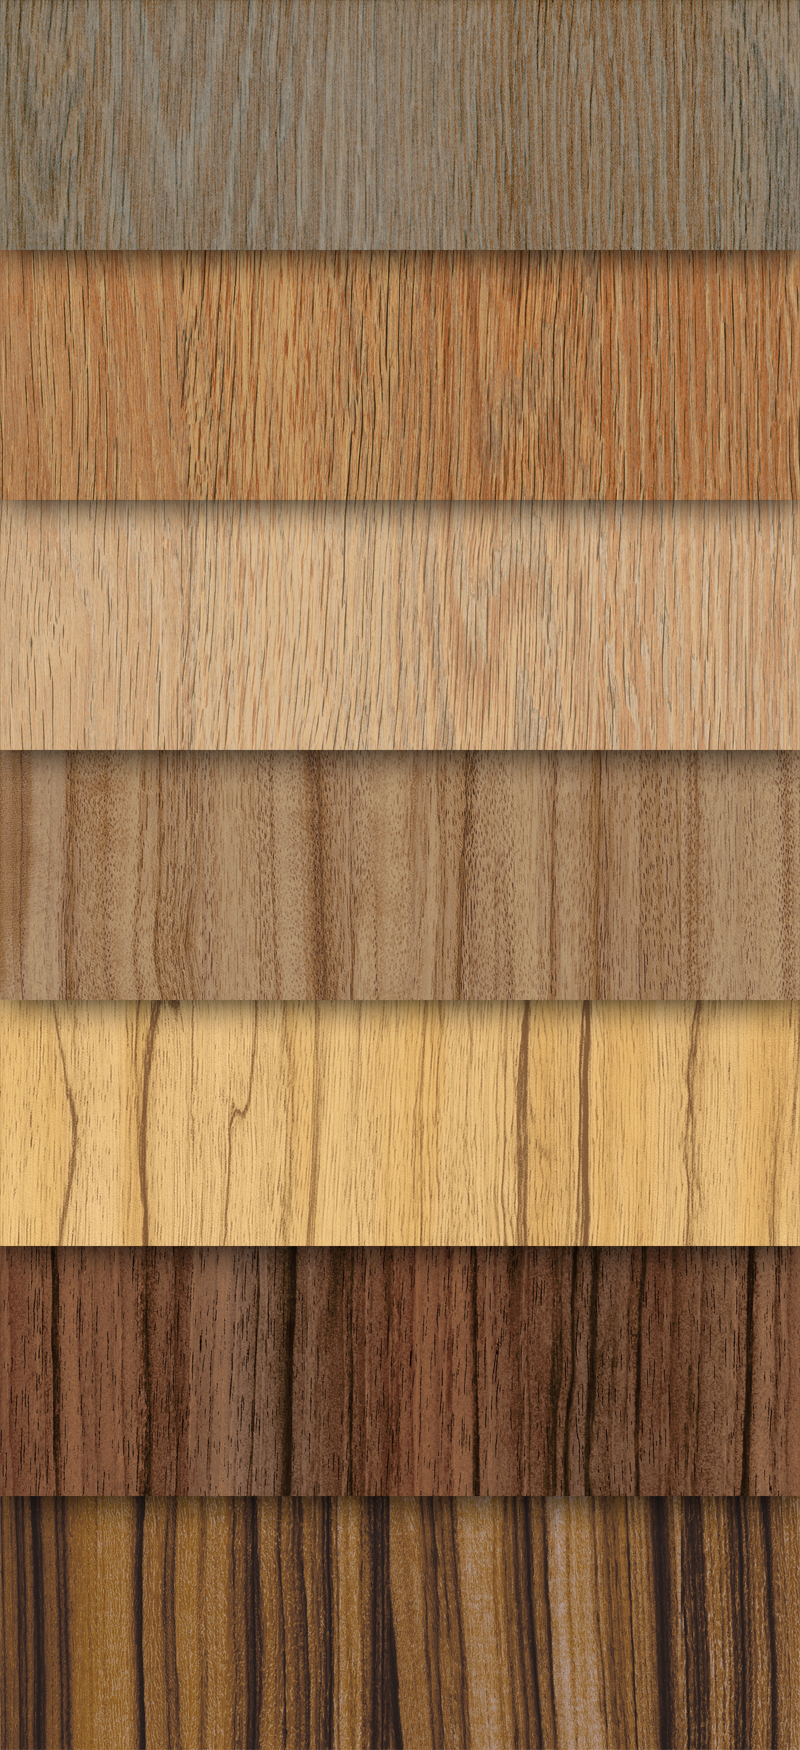 PSD Mockup Wood Flooring Grain Engineered Wood